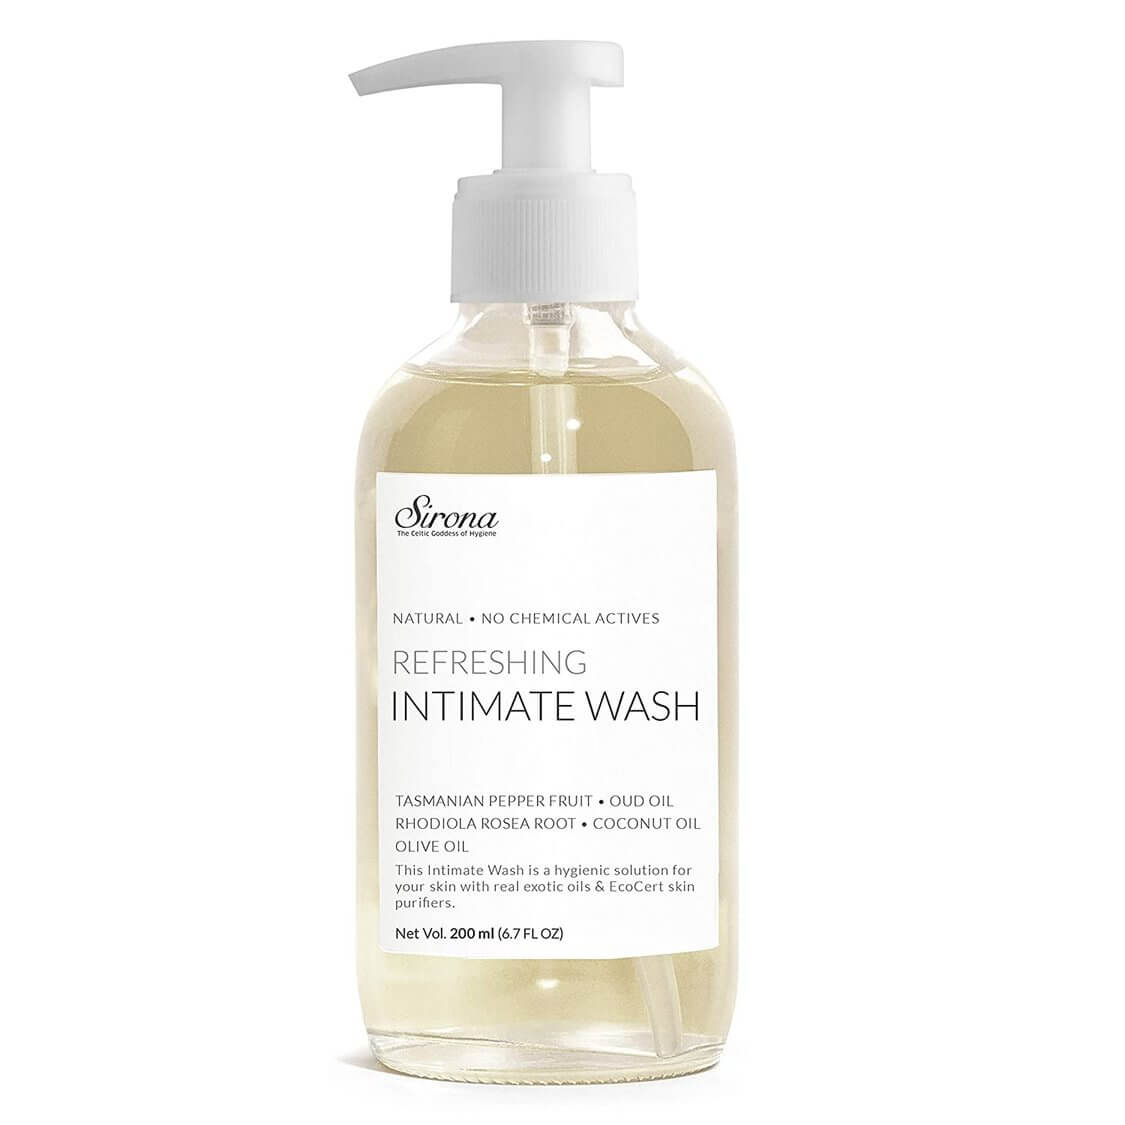 best intimate wash for women Sirona Natural pH Balanced Intimate Wash